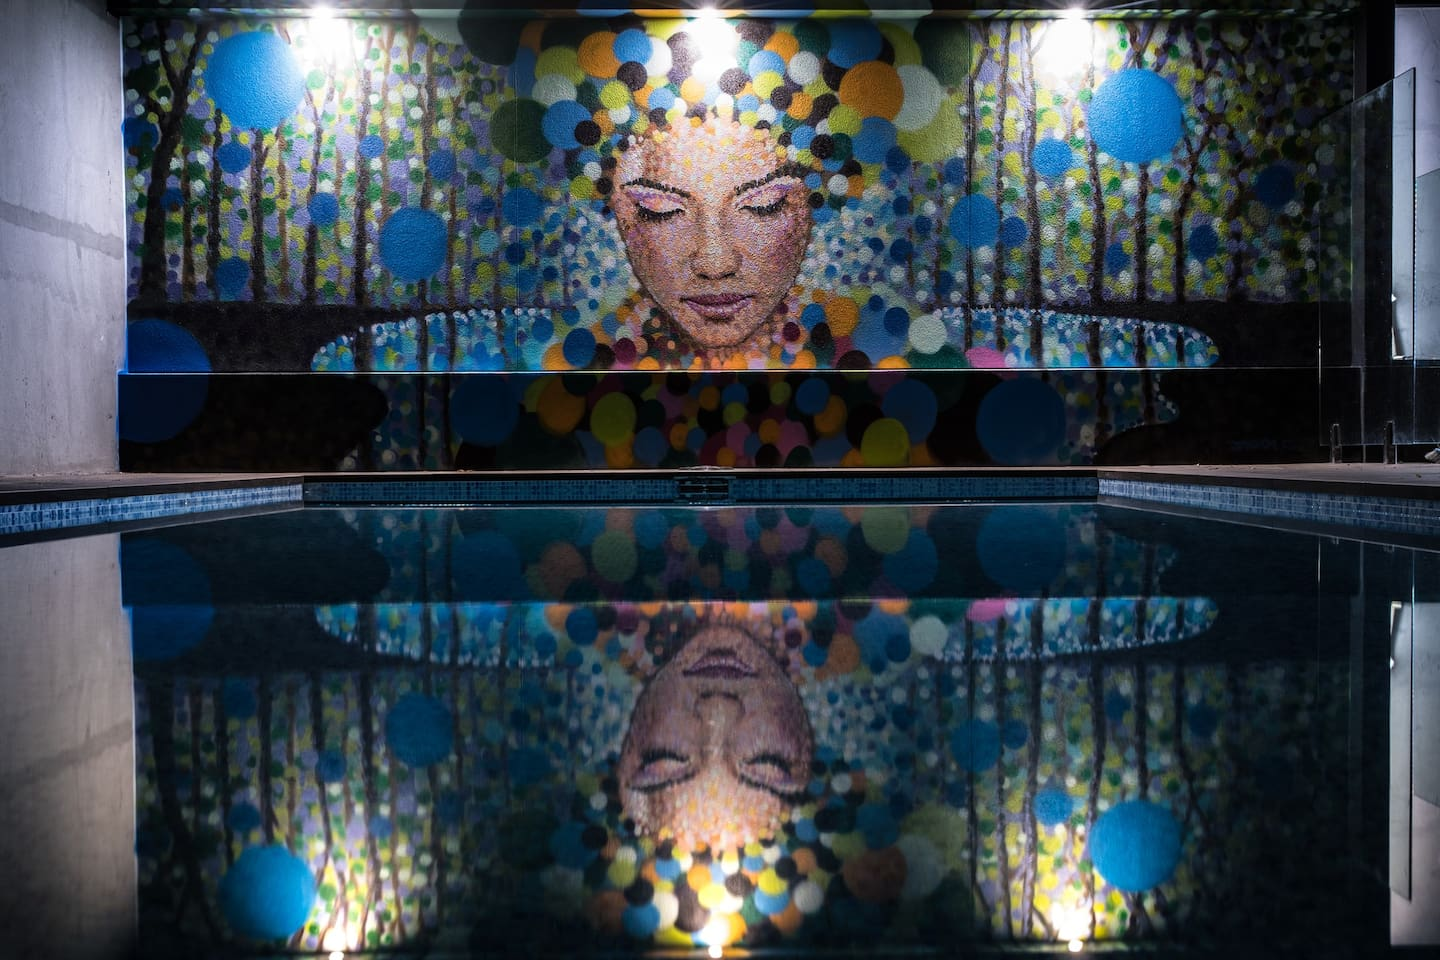 The swimming pool at night with 'Adelaide' painted by the world famous Jimmy C.